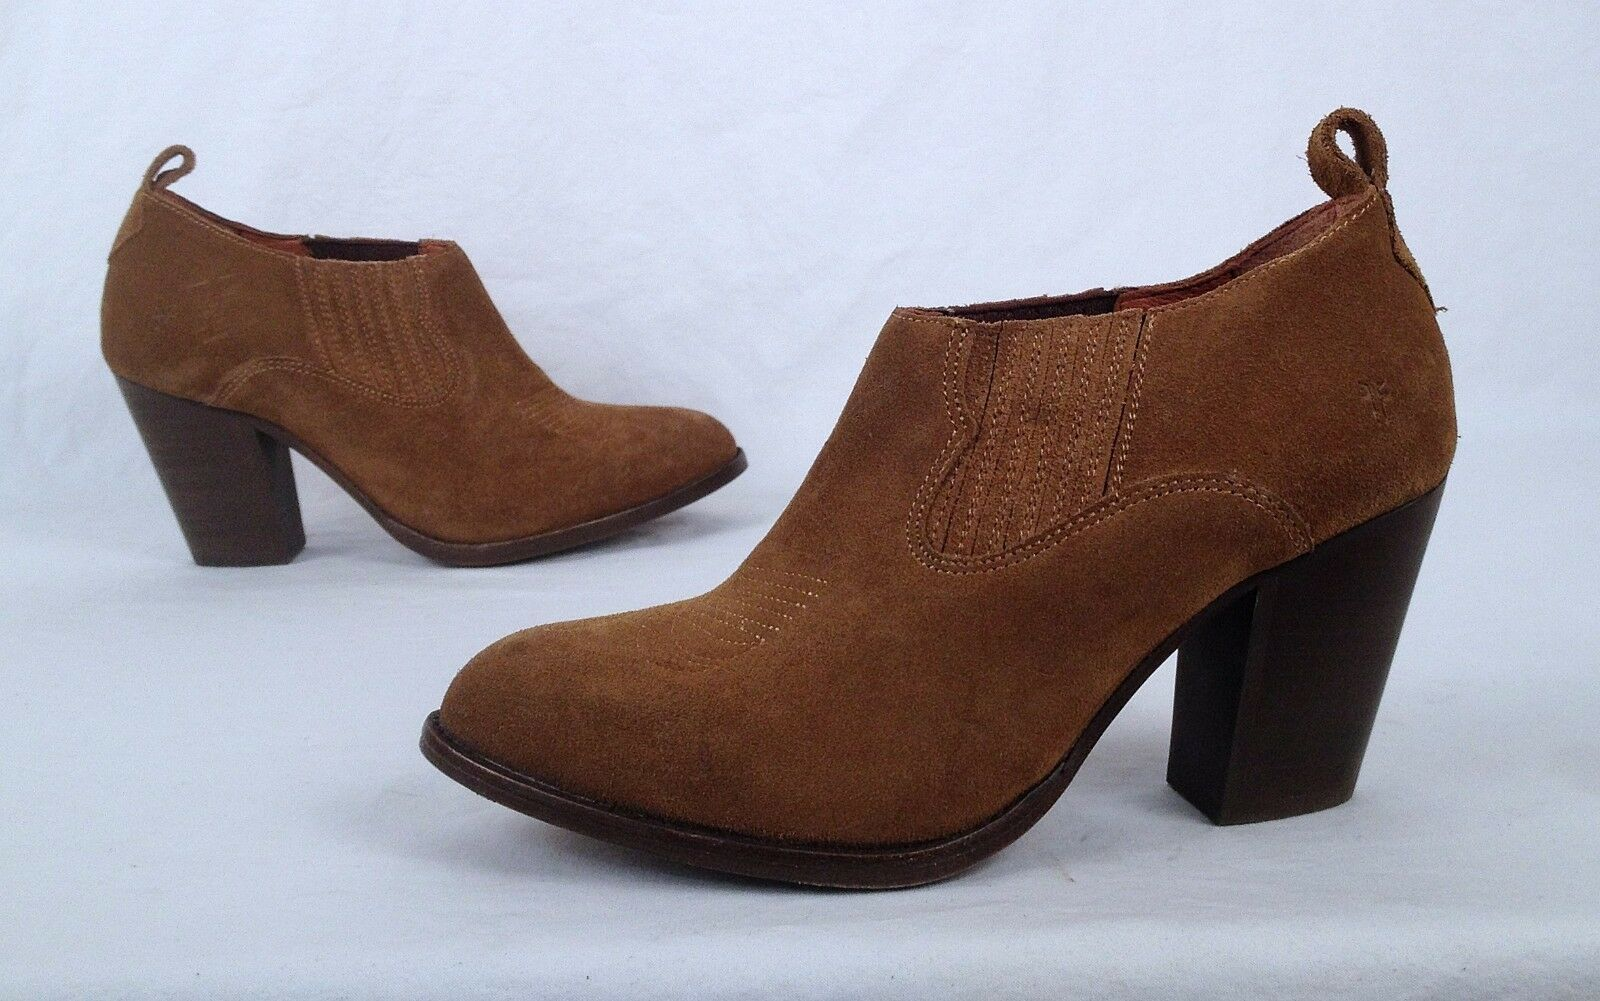 Frye Short Chelsea Boot- Light Brown Suede- Size 7 B   (B21)